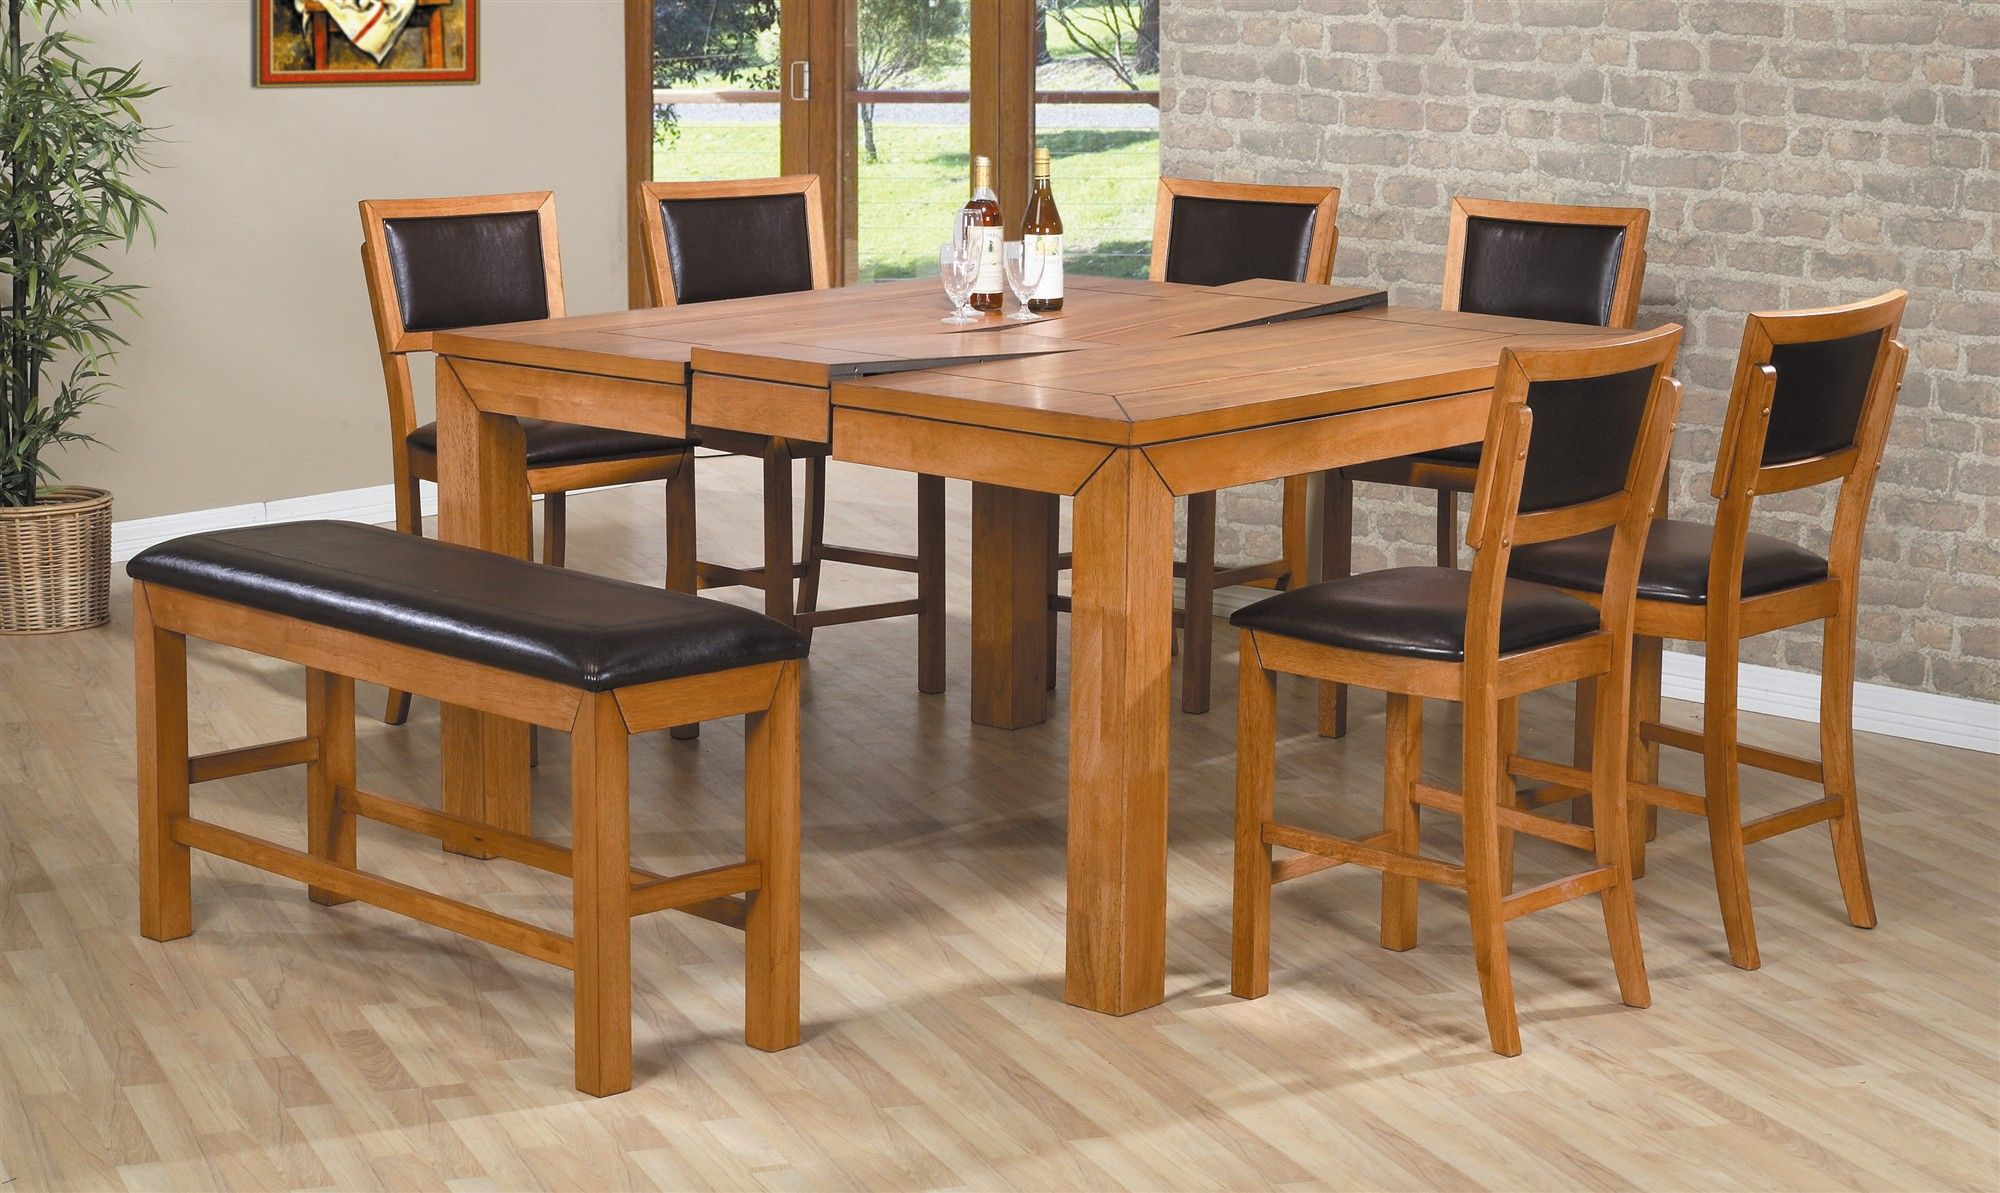 Dining Room Table And Chairs Mixing Woods Dining Table Creative Designs Amazing Rustic Brown Glo Square Dining Tables Wooden Dining Tables Dining Room Table